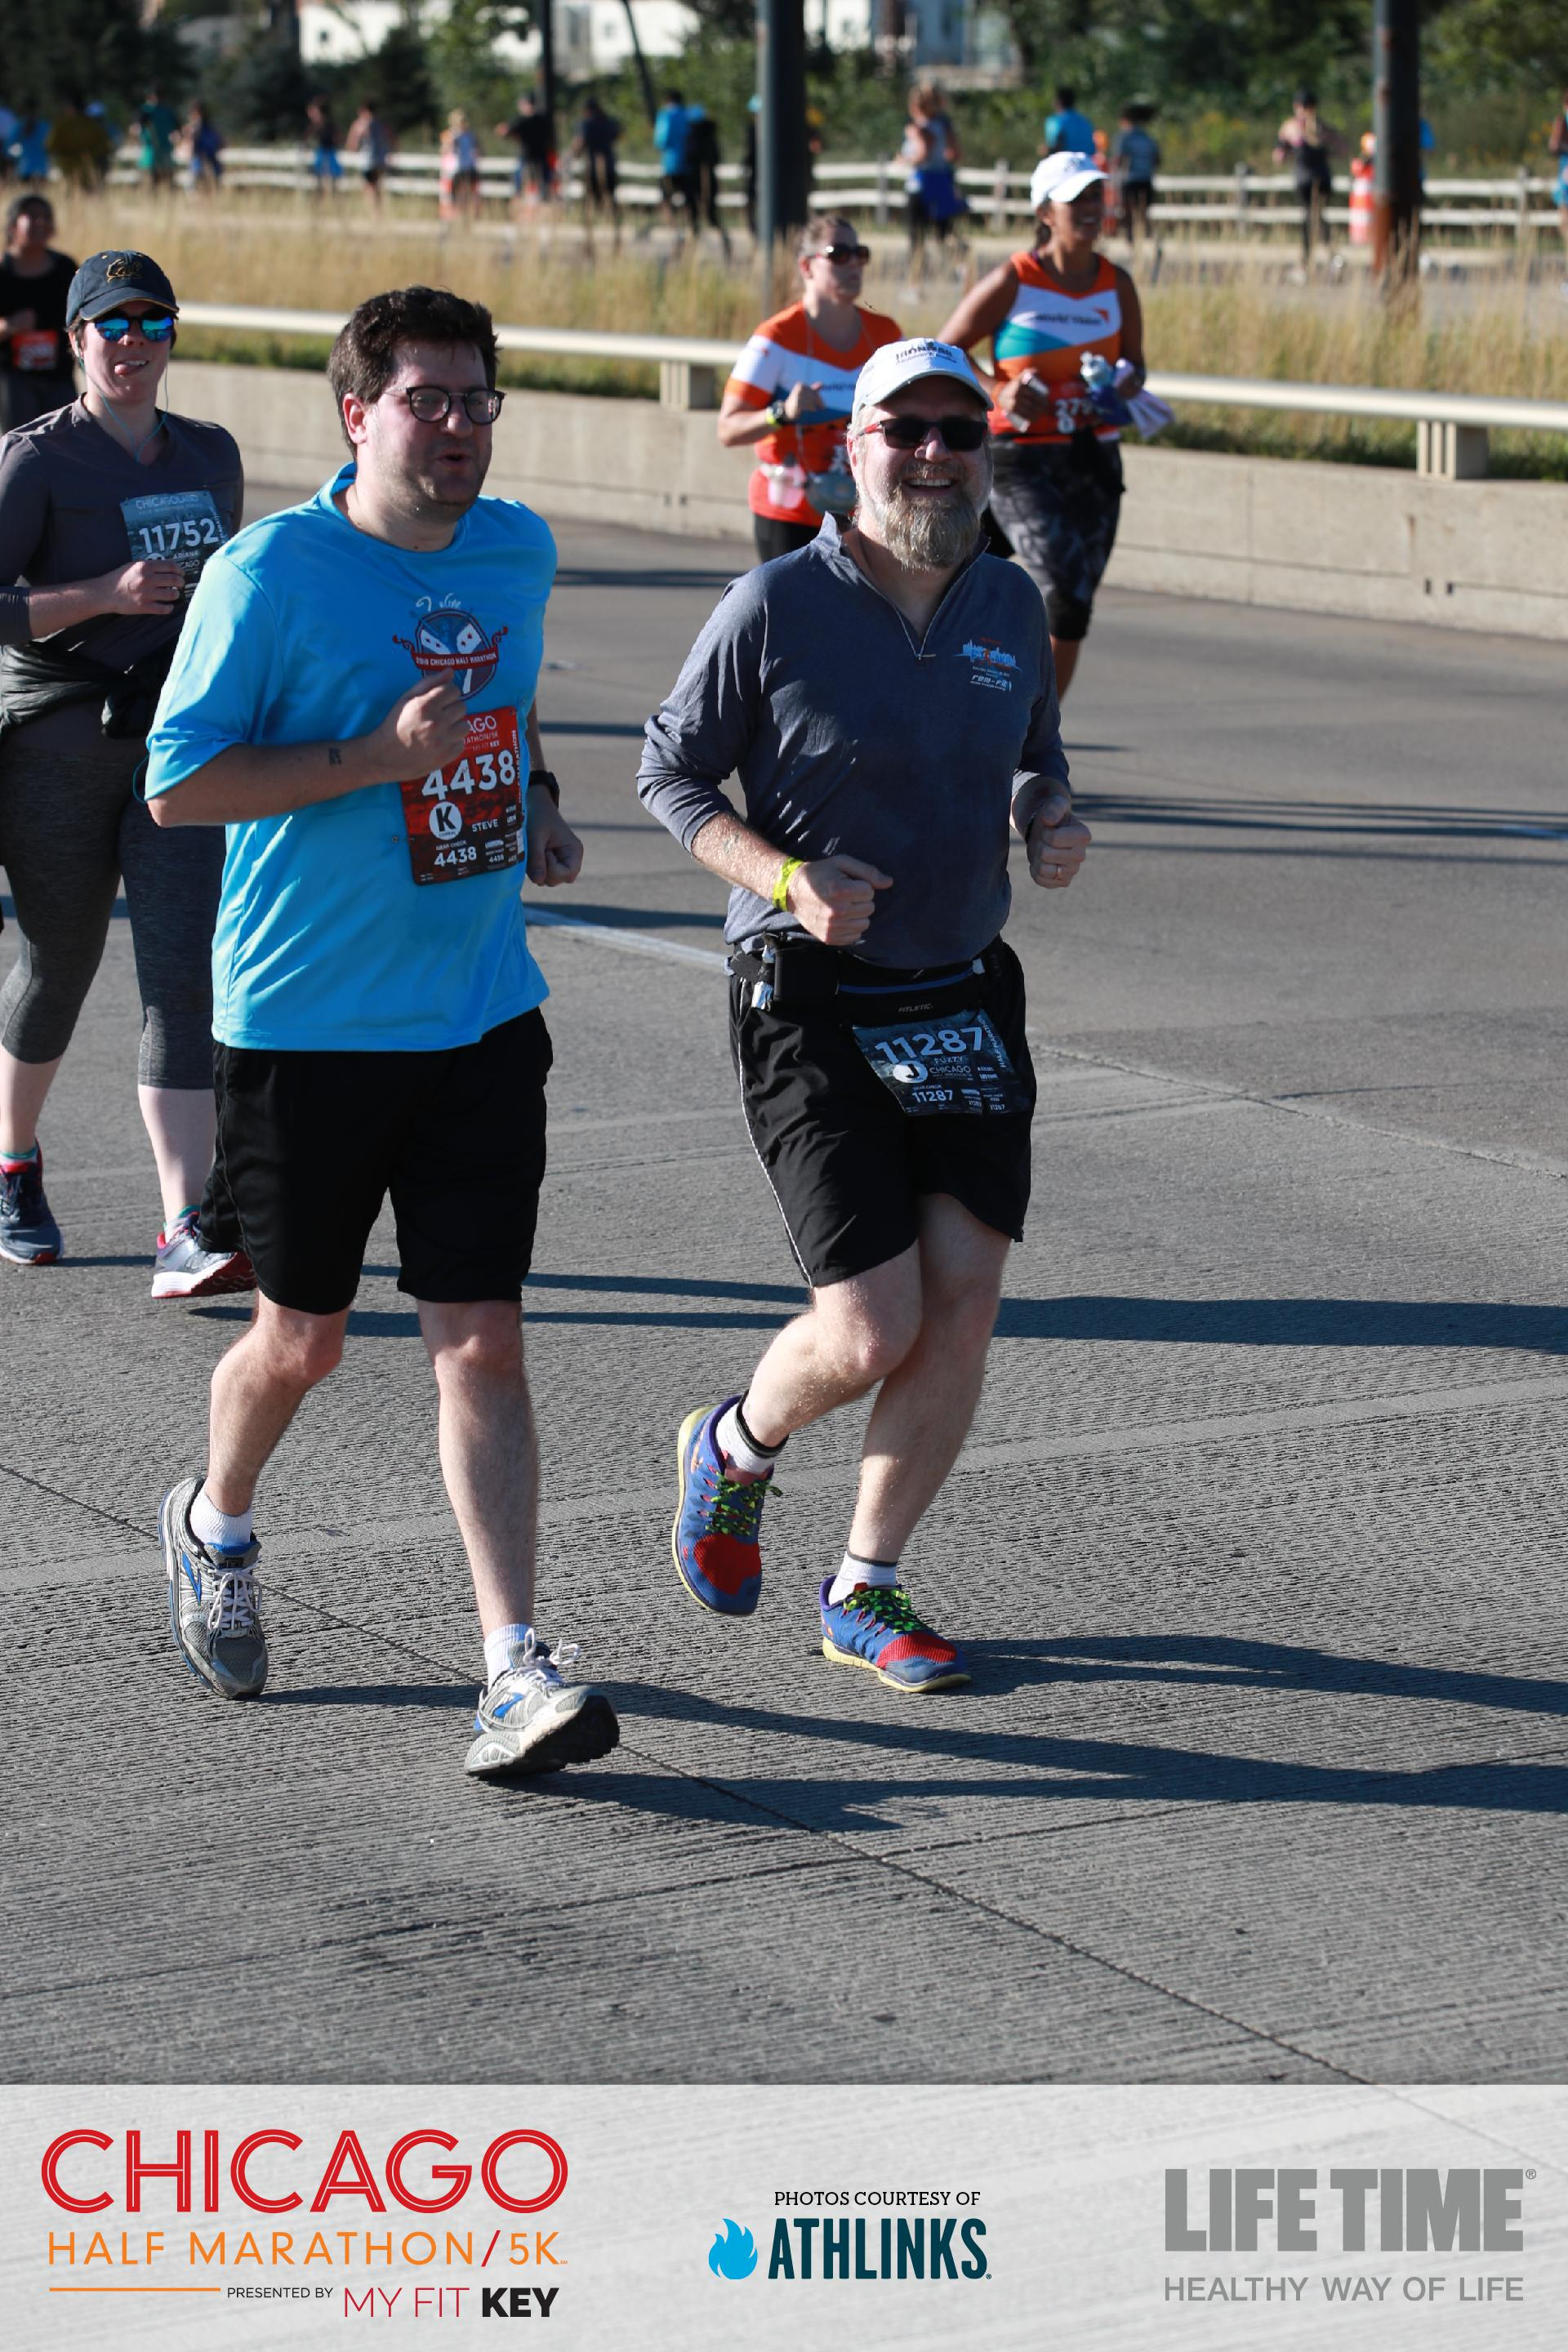 Steve and Fuzzy running the Chicago Half-Marathon